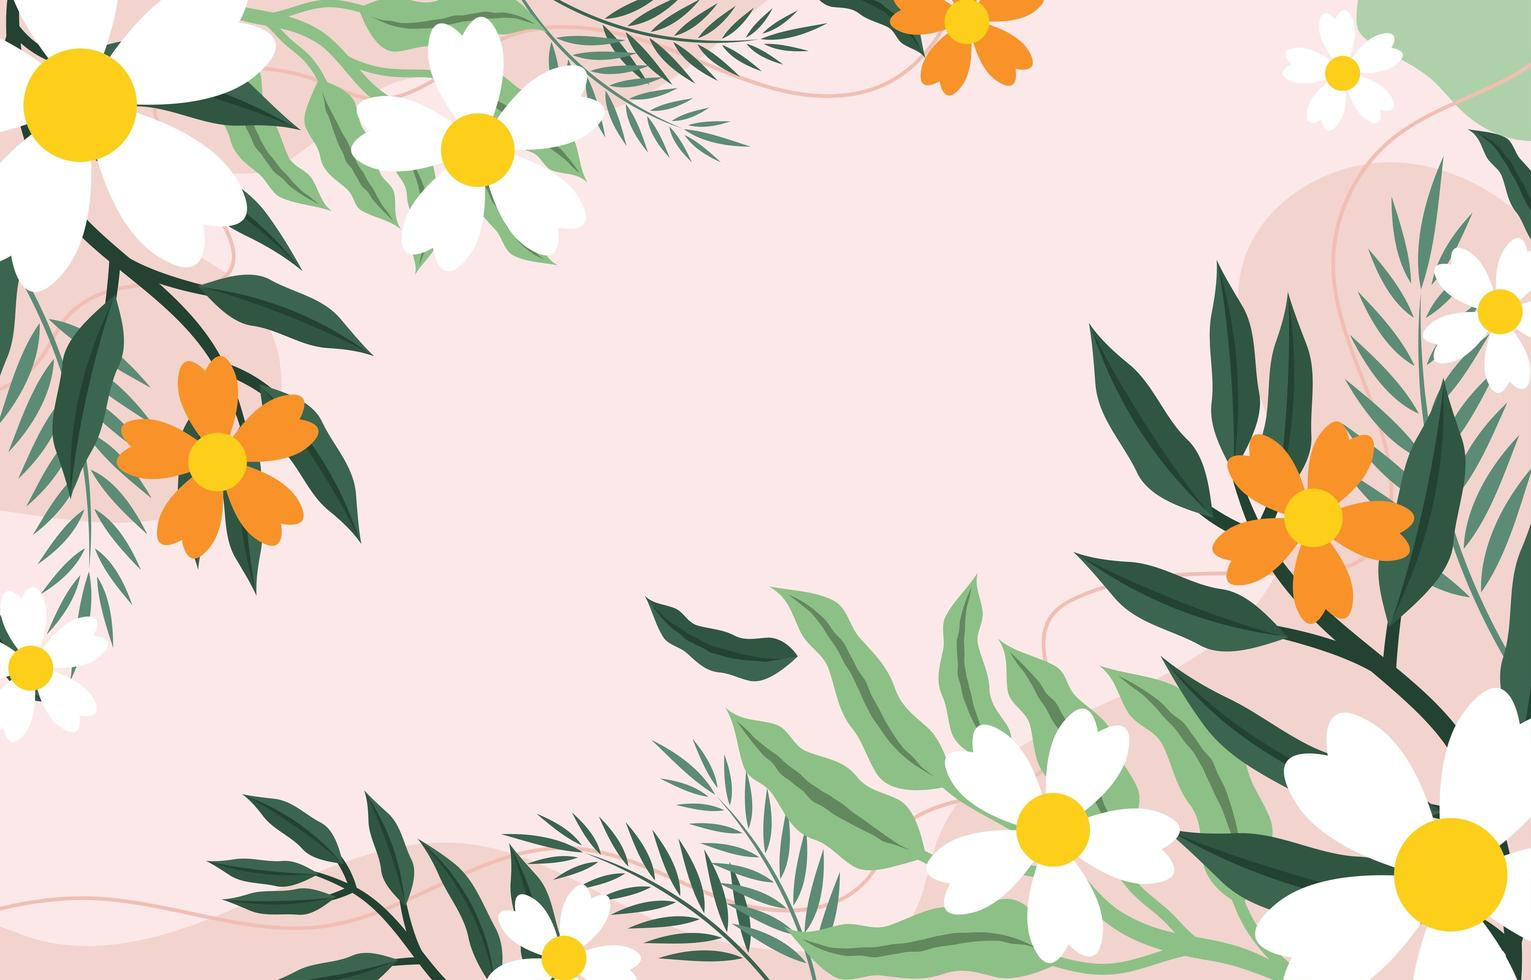 Green Color of Foliages Flat Background Design, vector